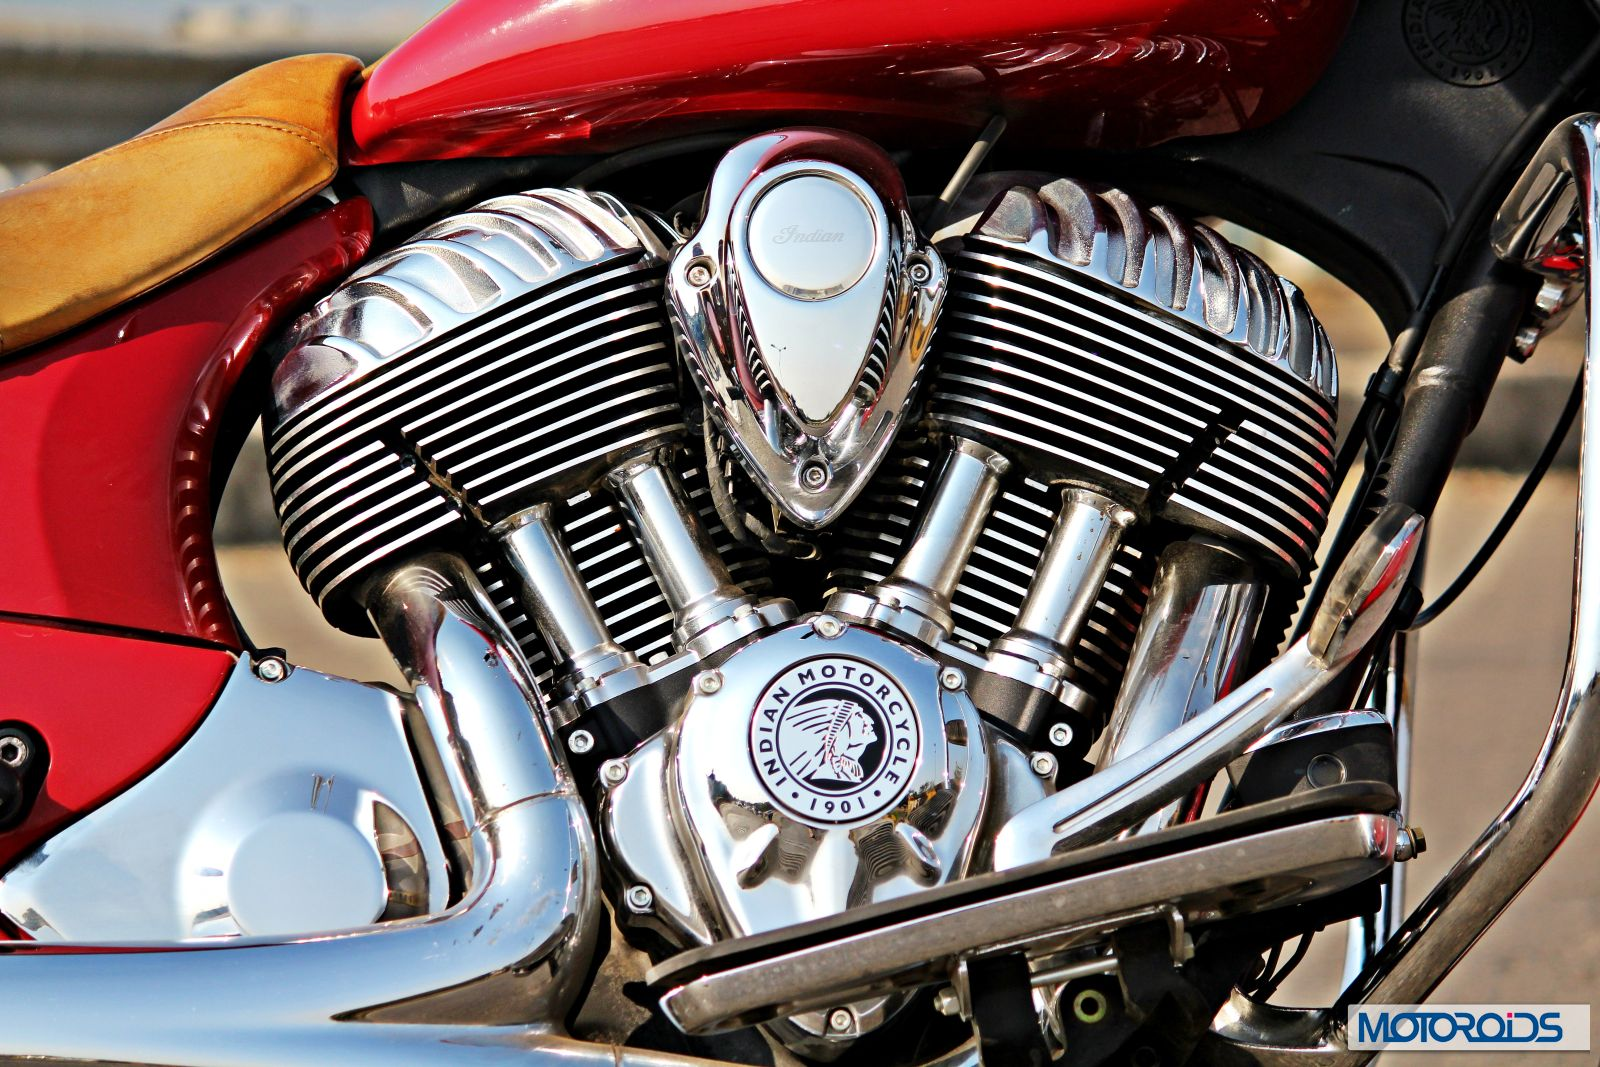 Indian Chief Vintage Review - Details - Thunder Stroke 111 Engine - Close Up